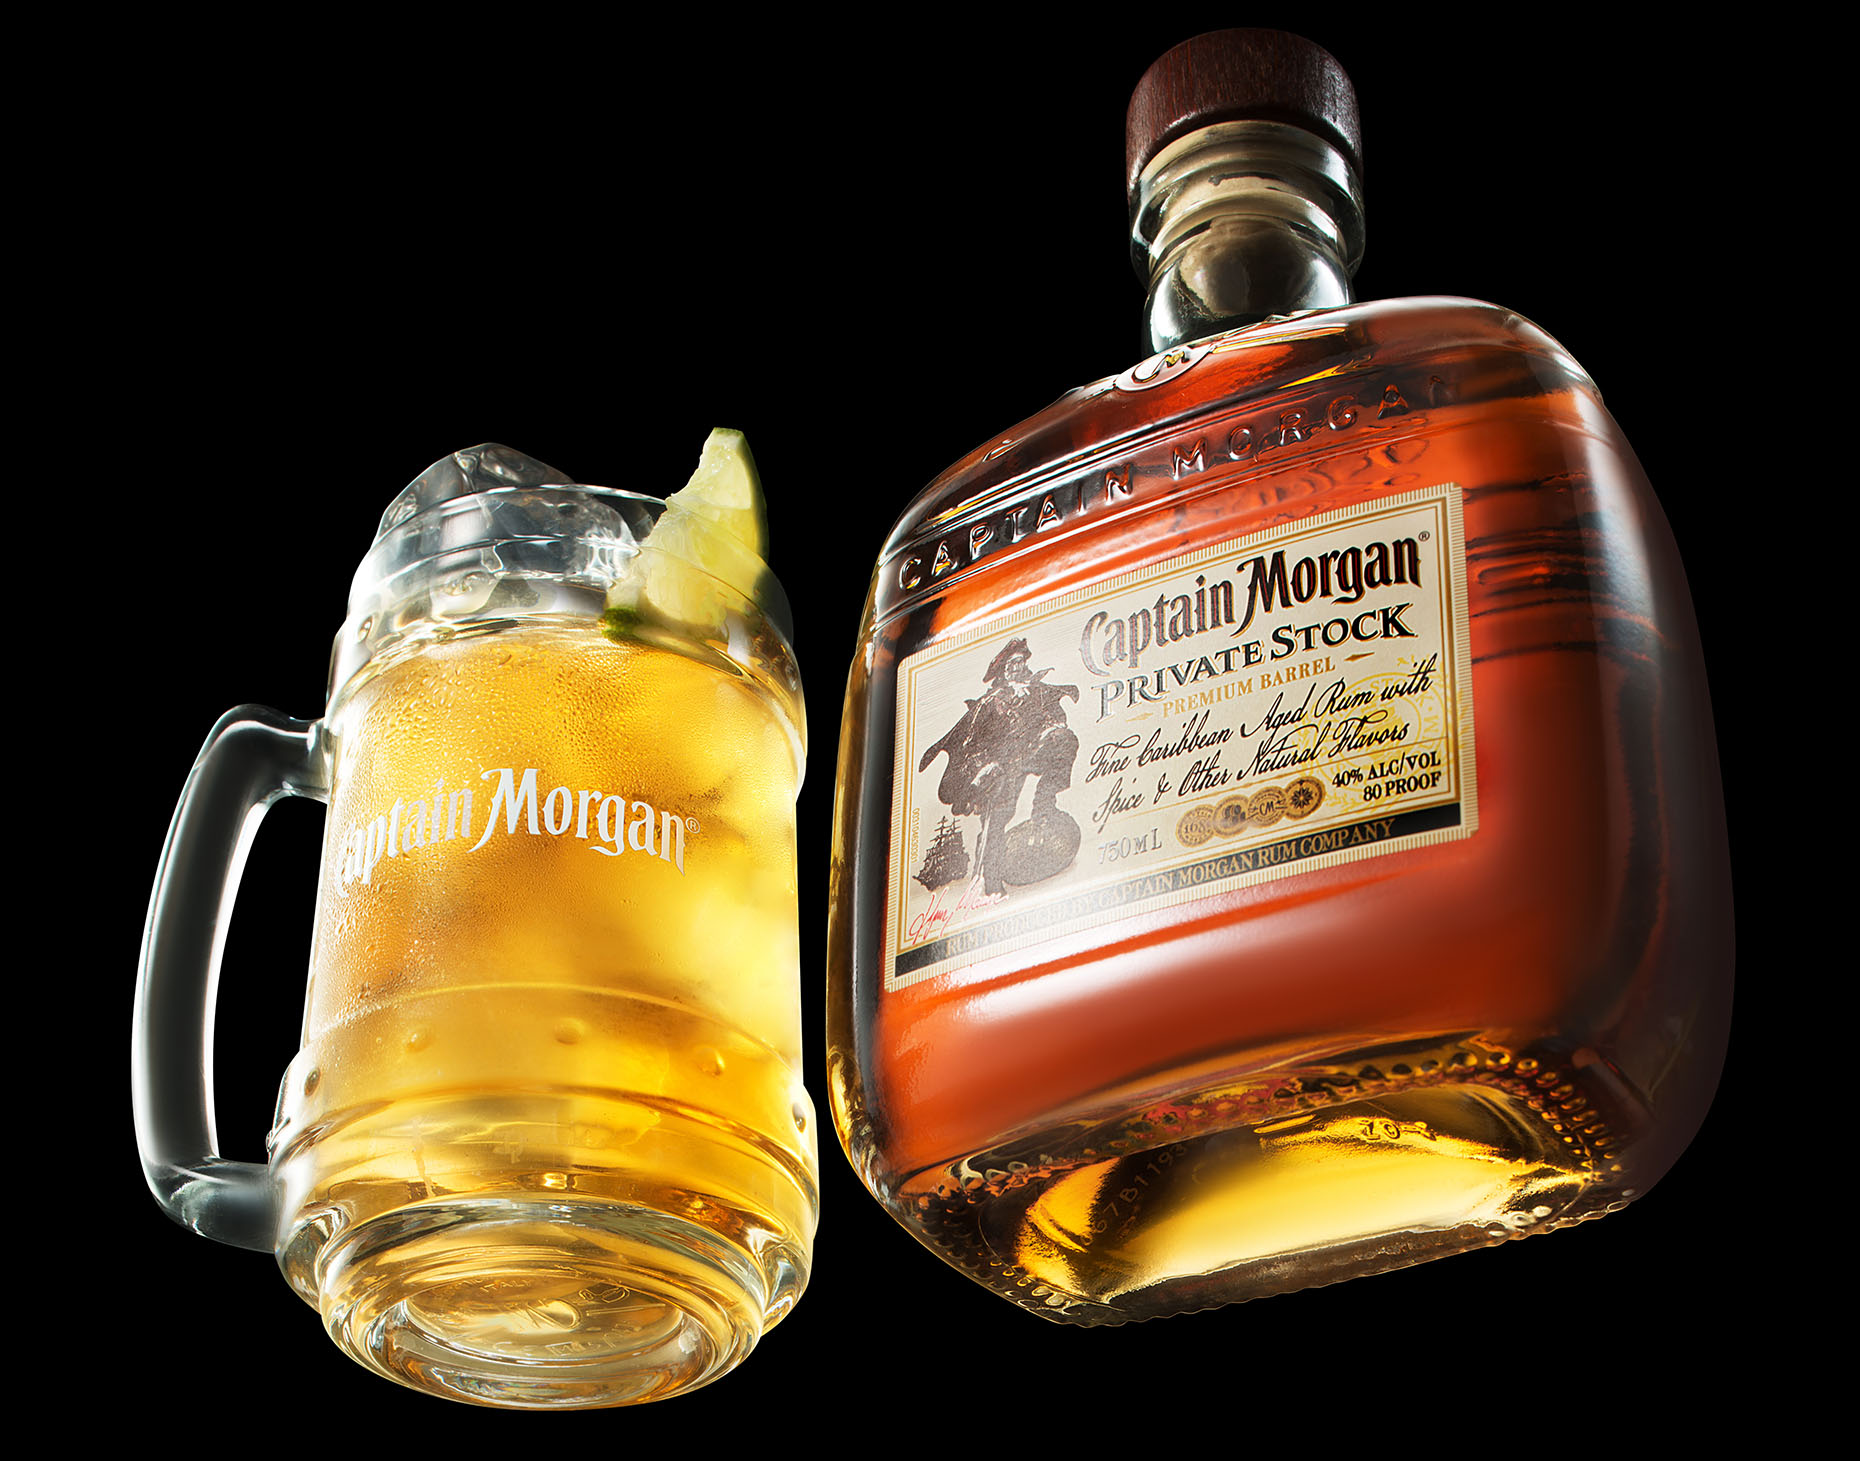 new-york-liquid-phtography-drink-photography-Captain-Morgan